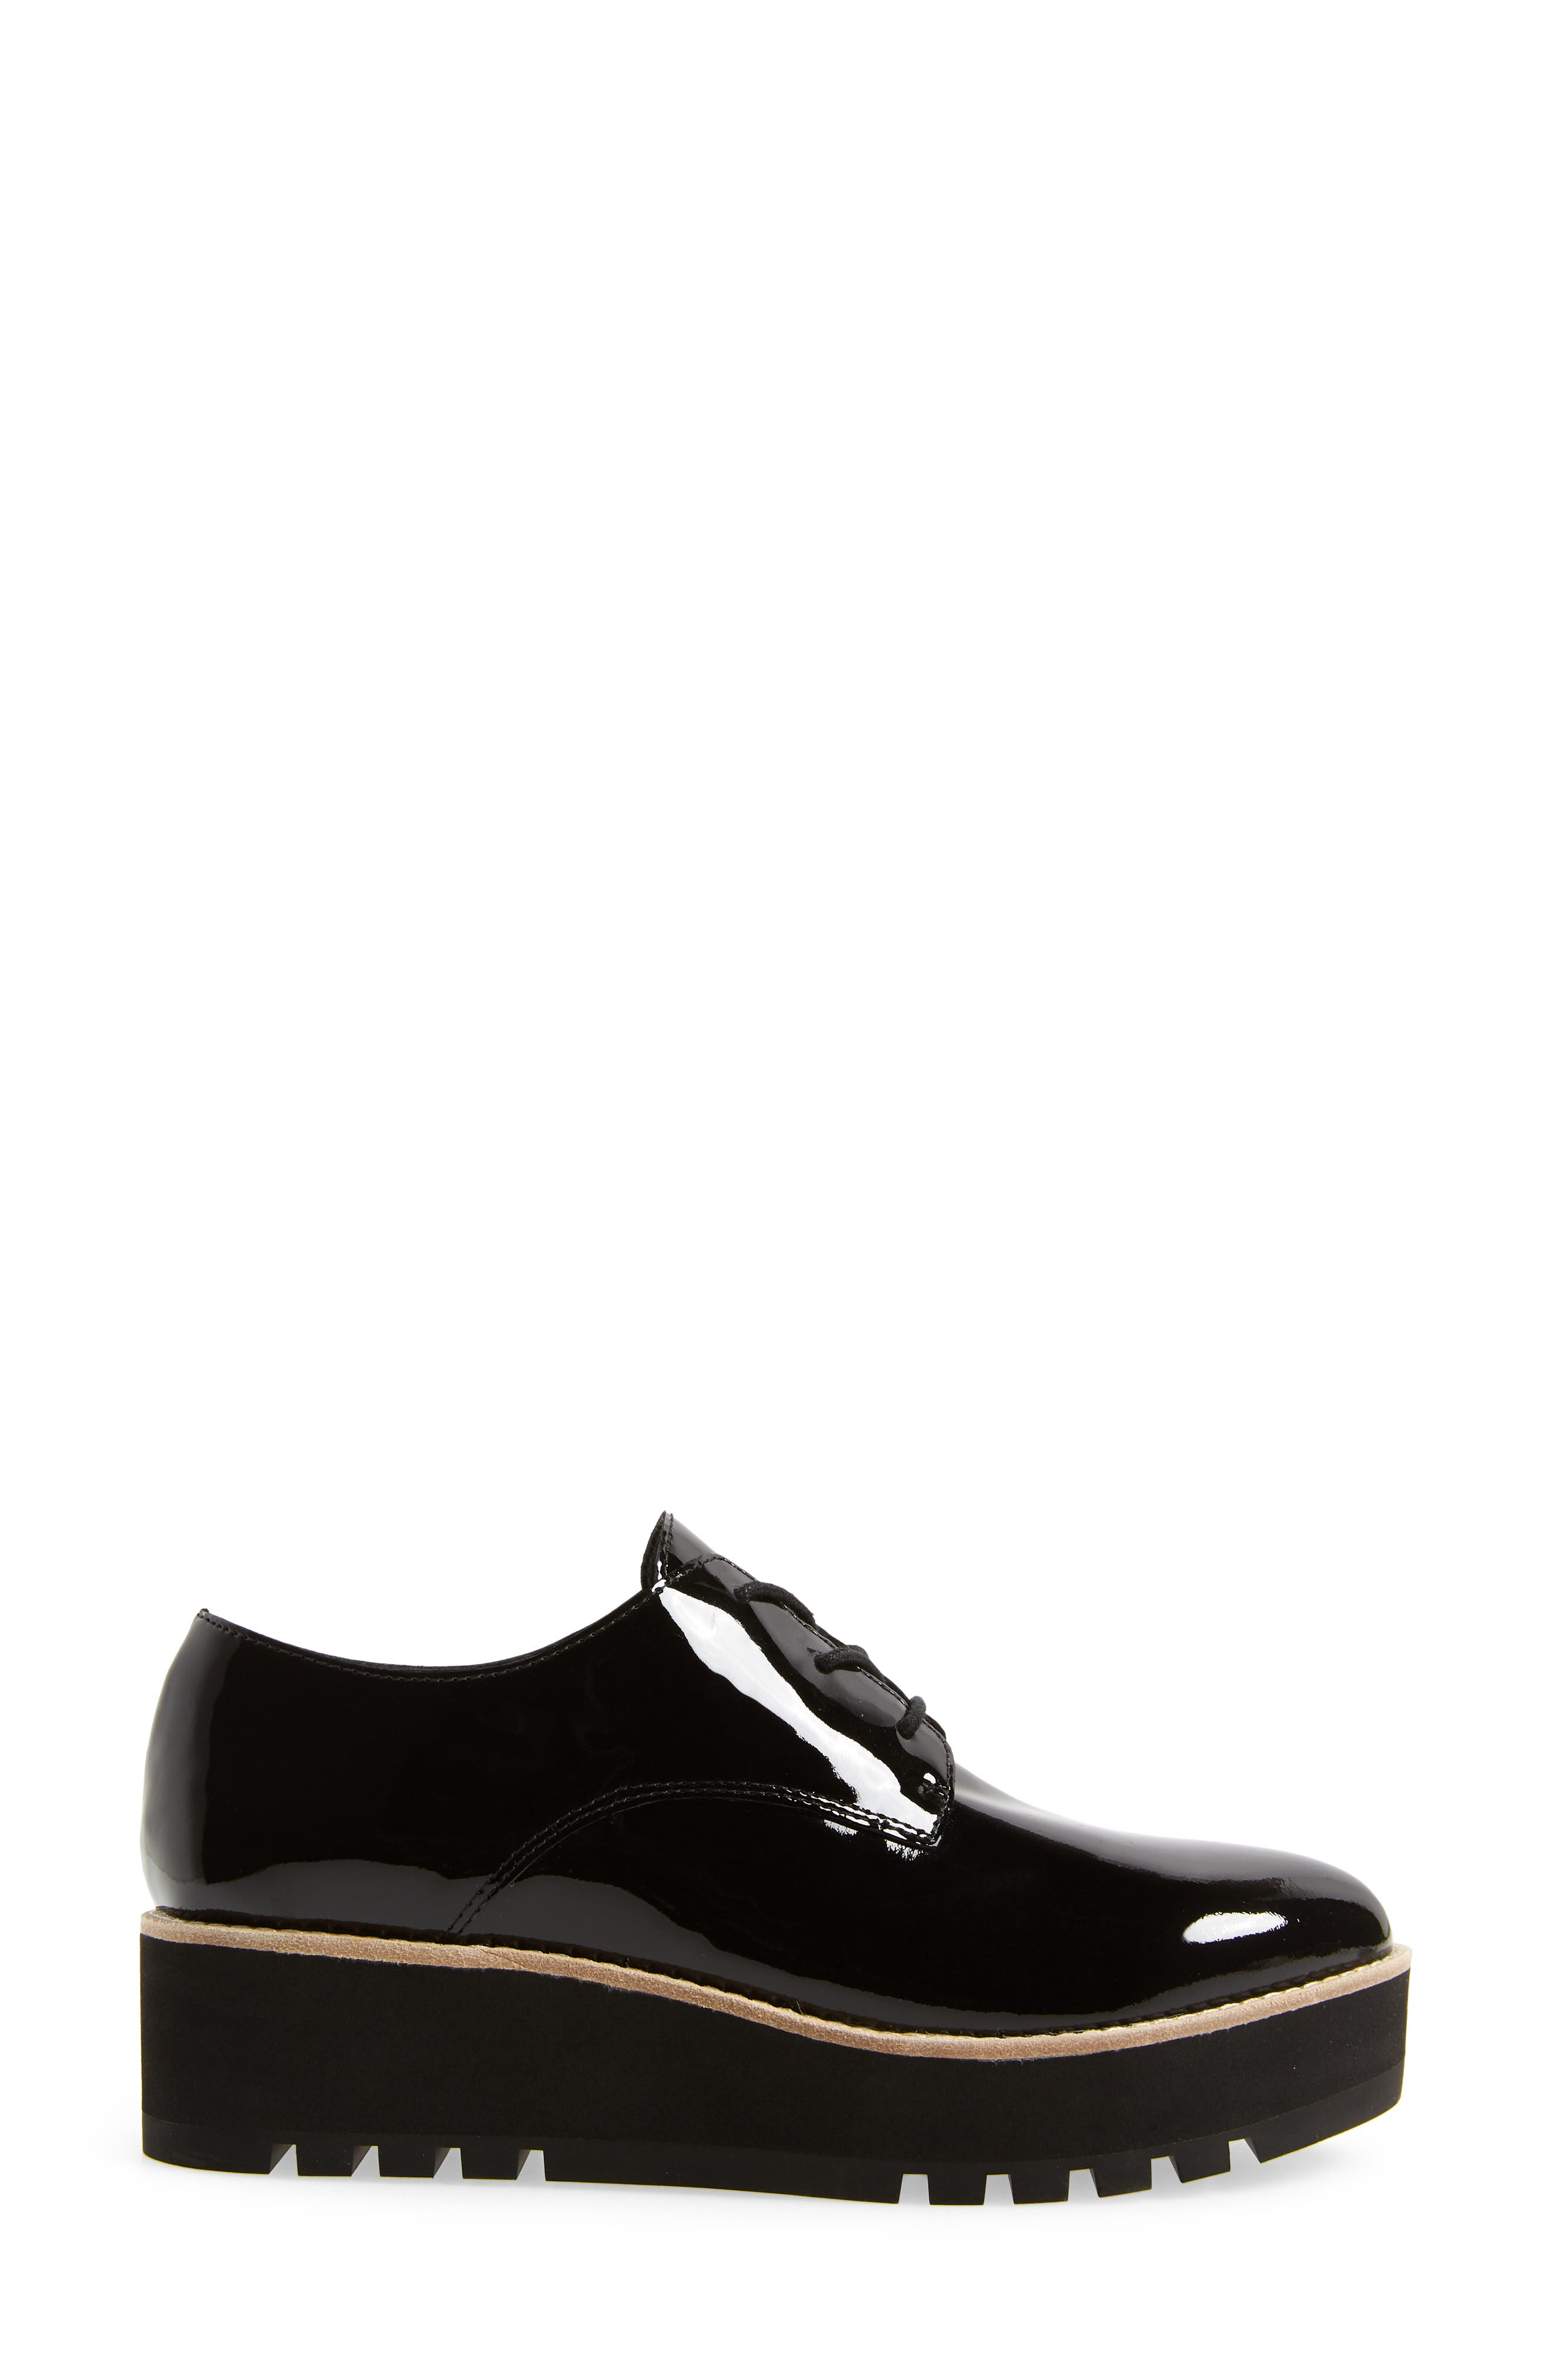 Eddy Derby,                             Alternate thumbnail 3, color,                             BLACK PATENT LEATHER